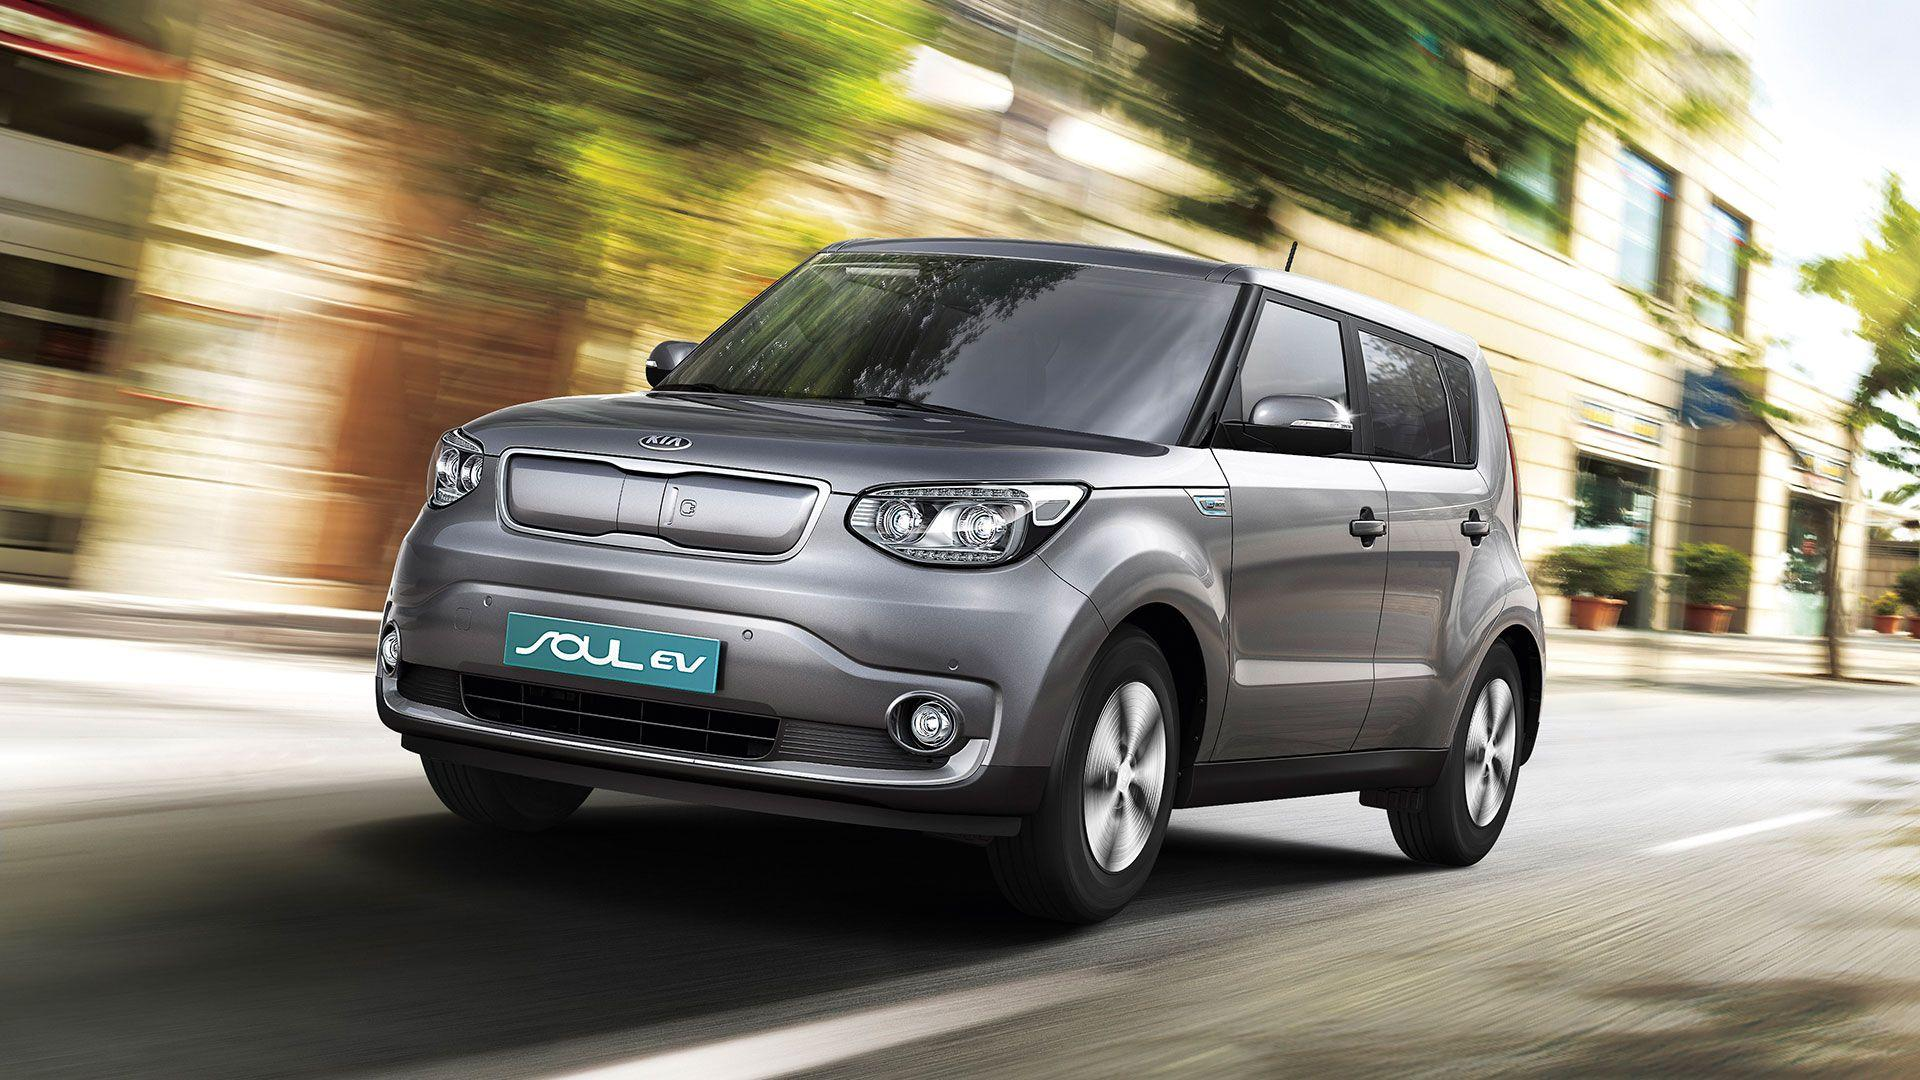 Silver Kia Soul EV electric vehicle in motion wallpapers and images ...